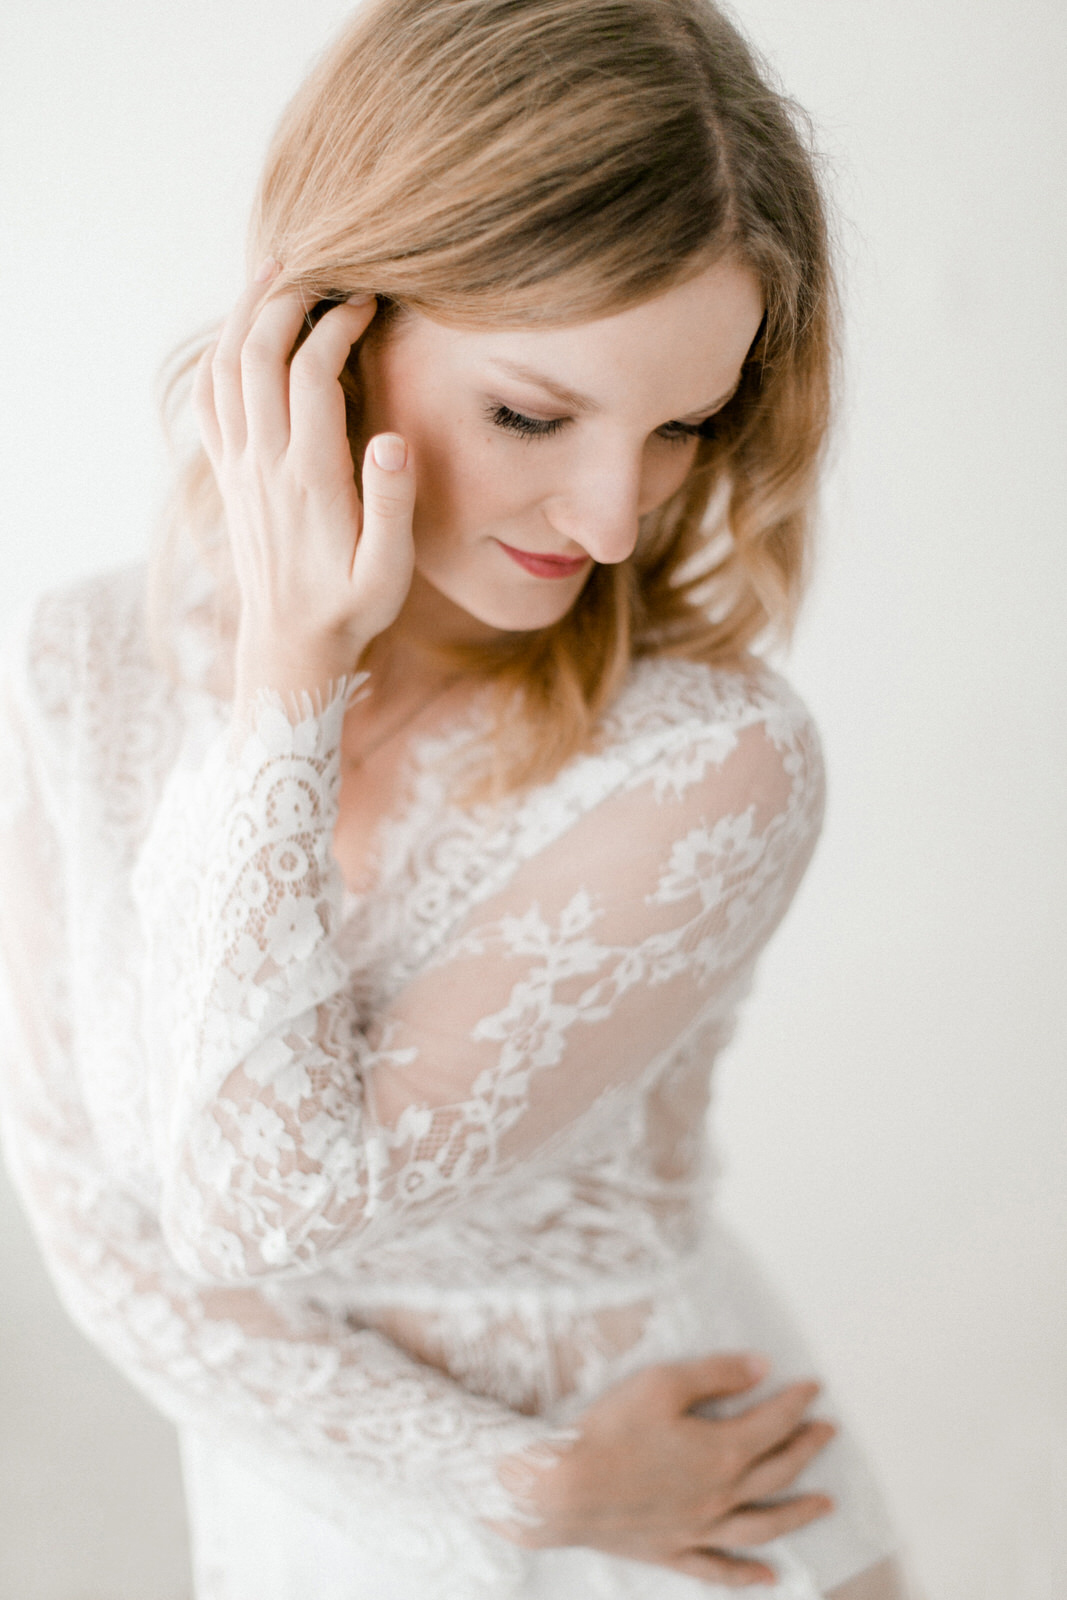 boudoir-collective-fine-art-boudoir-blog-and-magazine-christin-buschold-photographie-4